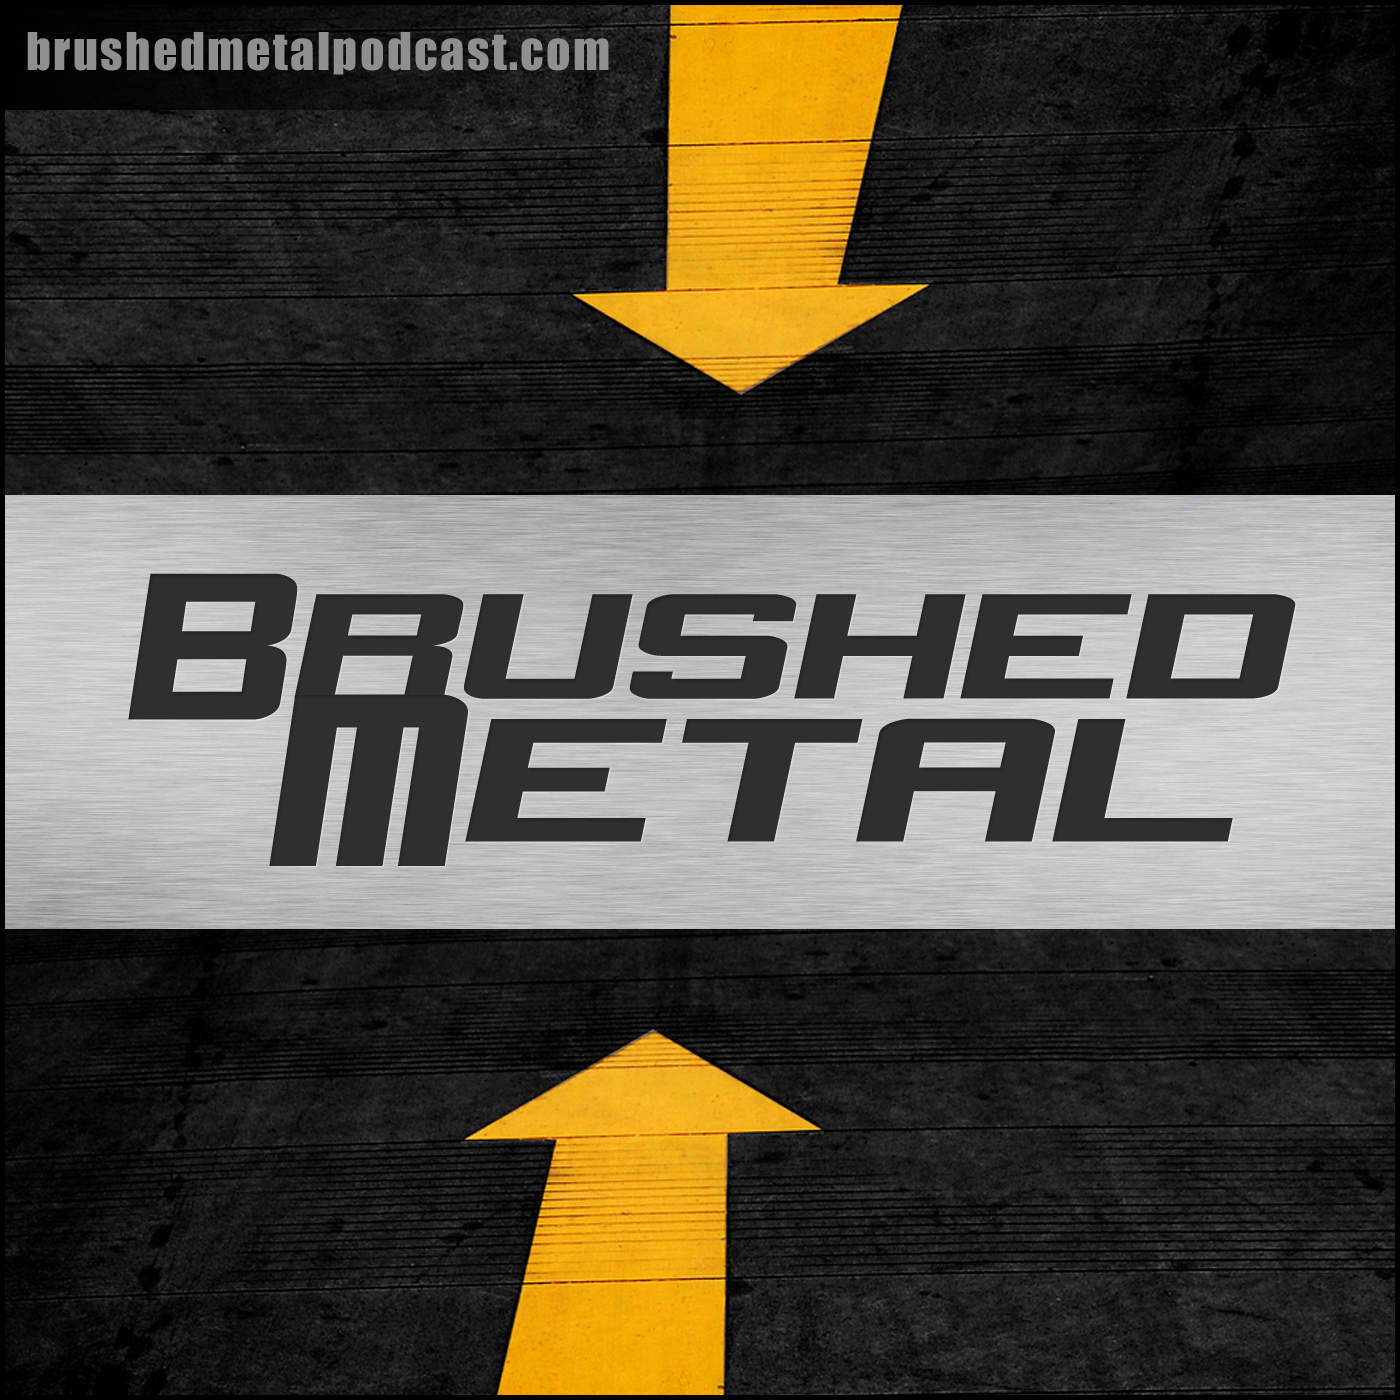 Brushed Metal Podcast